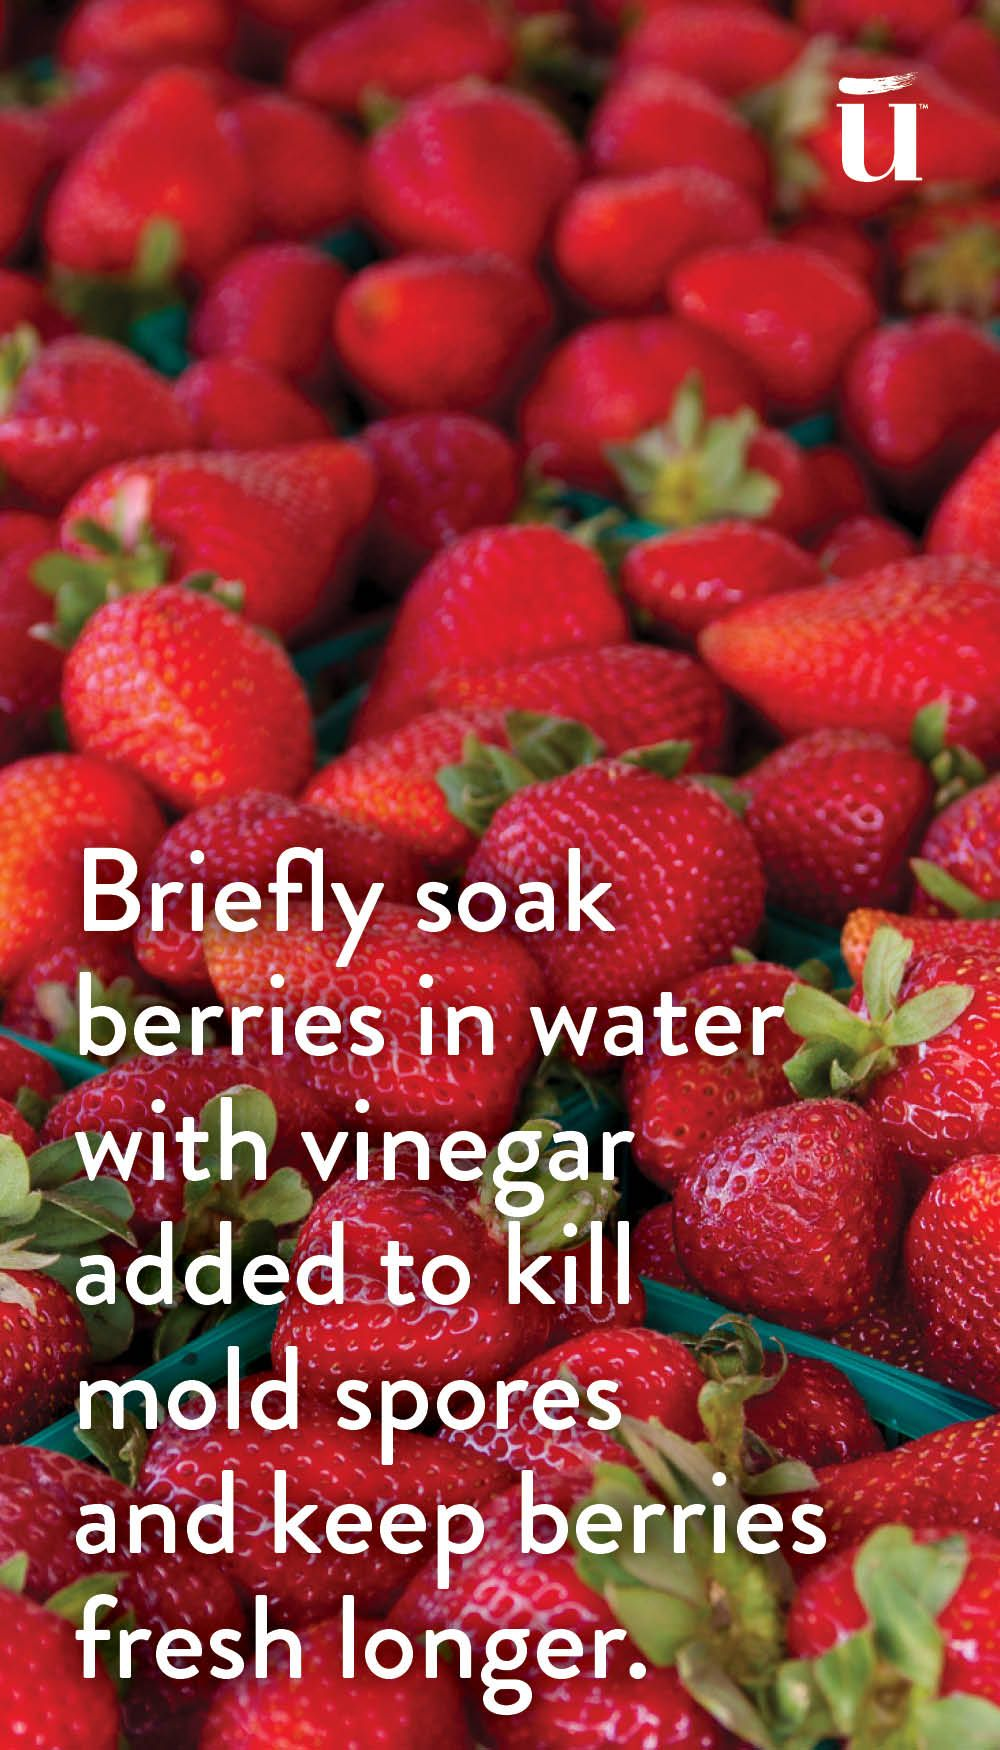 Briefly soak berries in water with vinegar added to kill mold spores